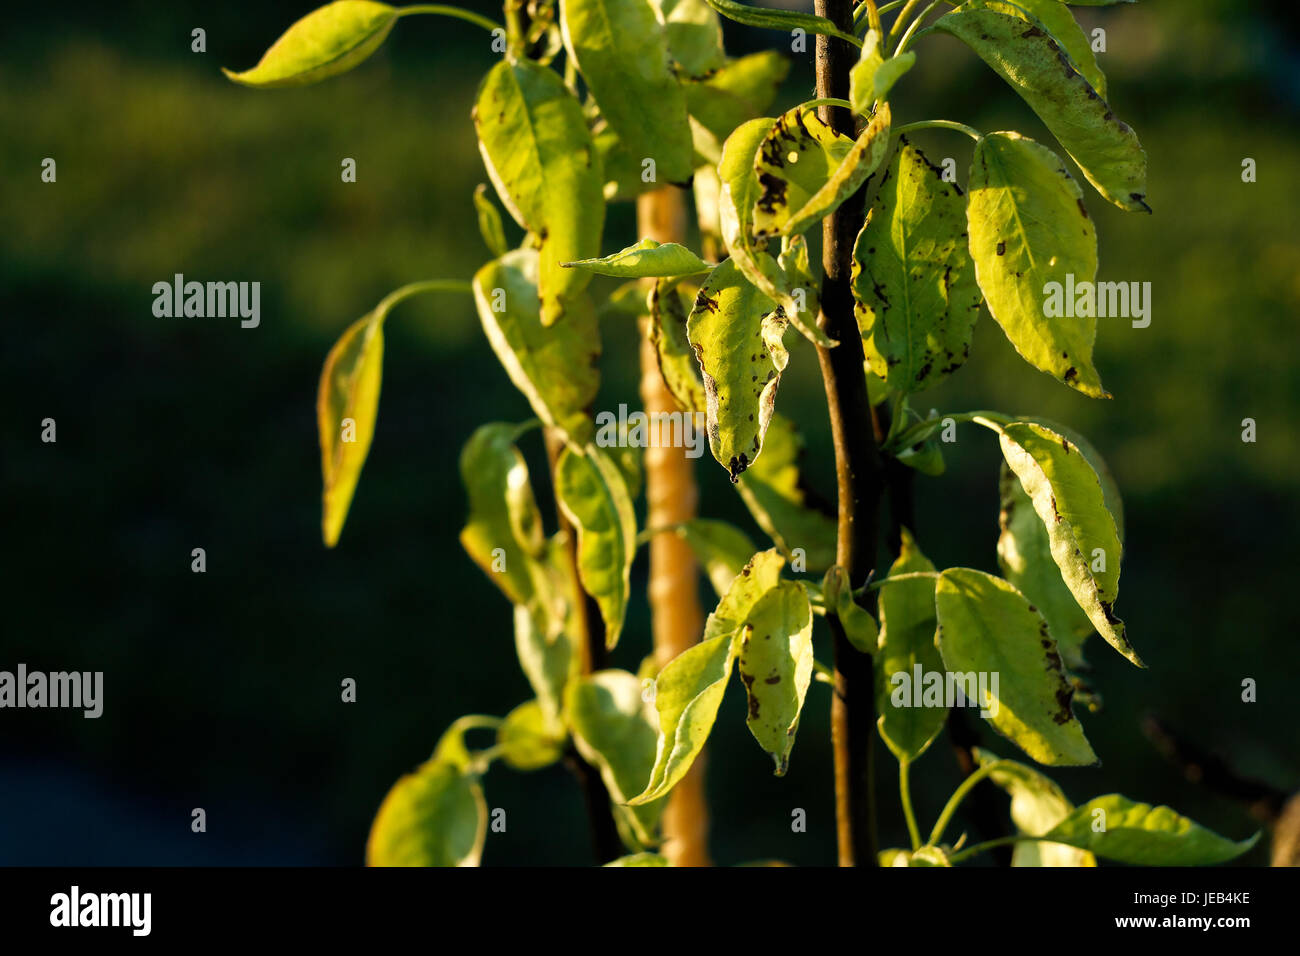 Blackening of the leaves on a pear tree due to cold weather - Stock Image